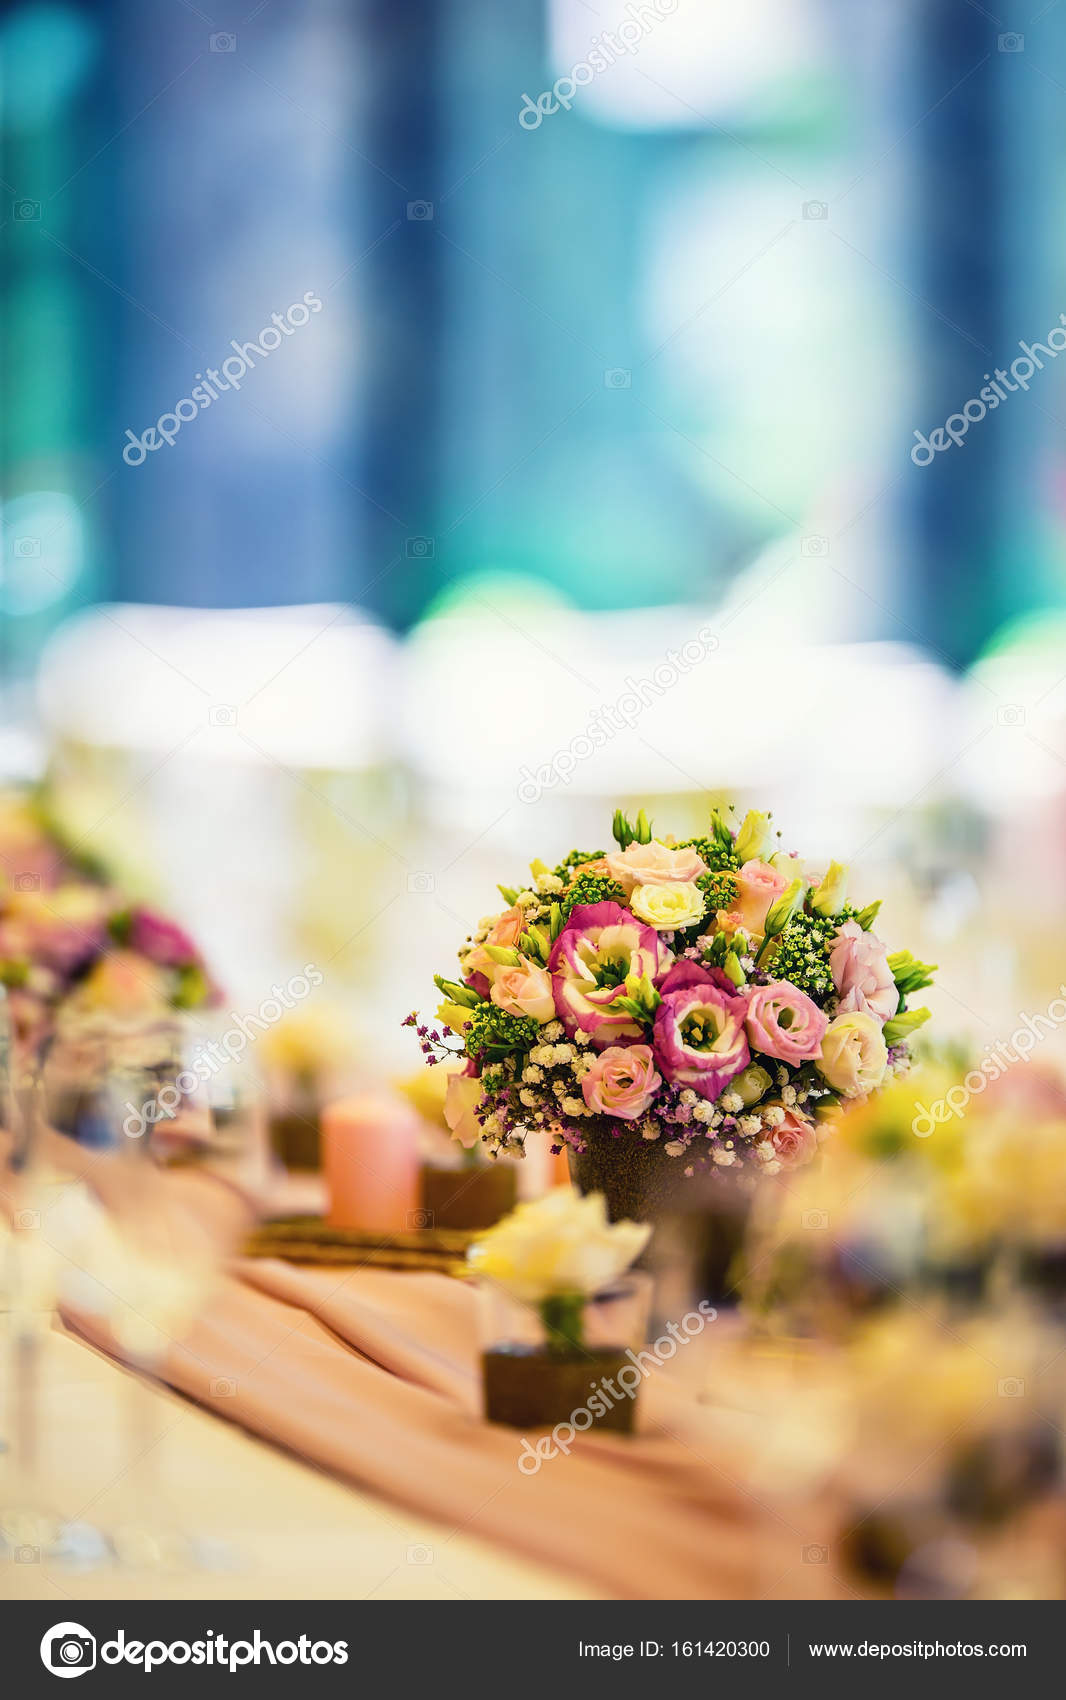 Wedding Table Setting Beautiful Table Set With Flowers And Glass